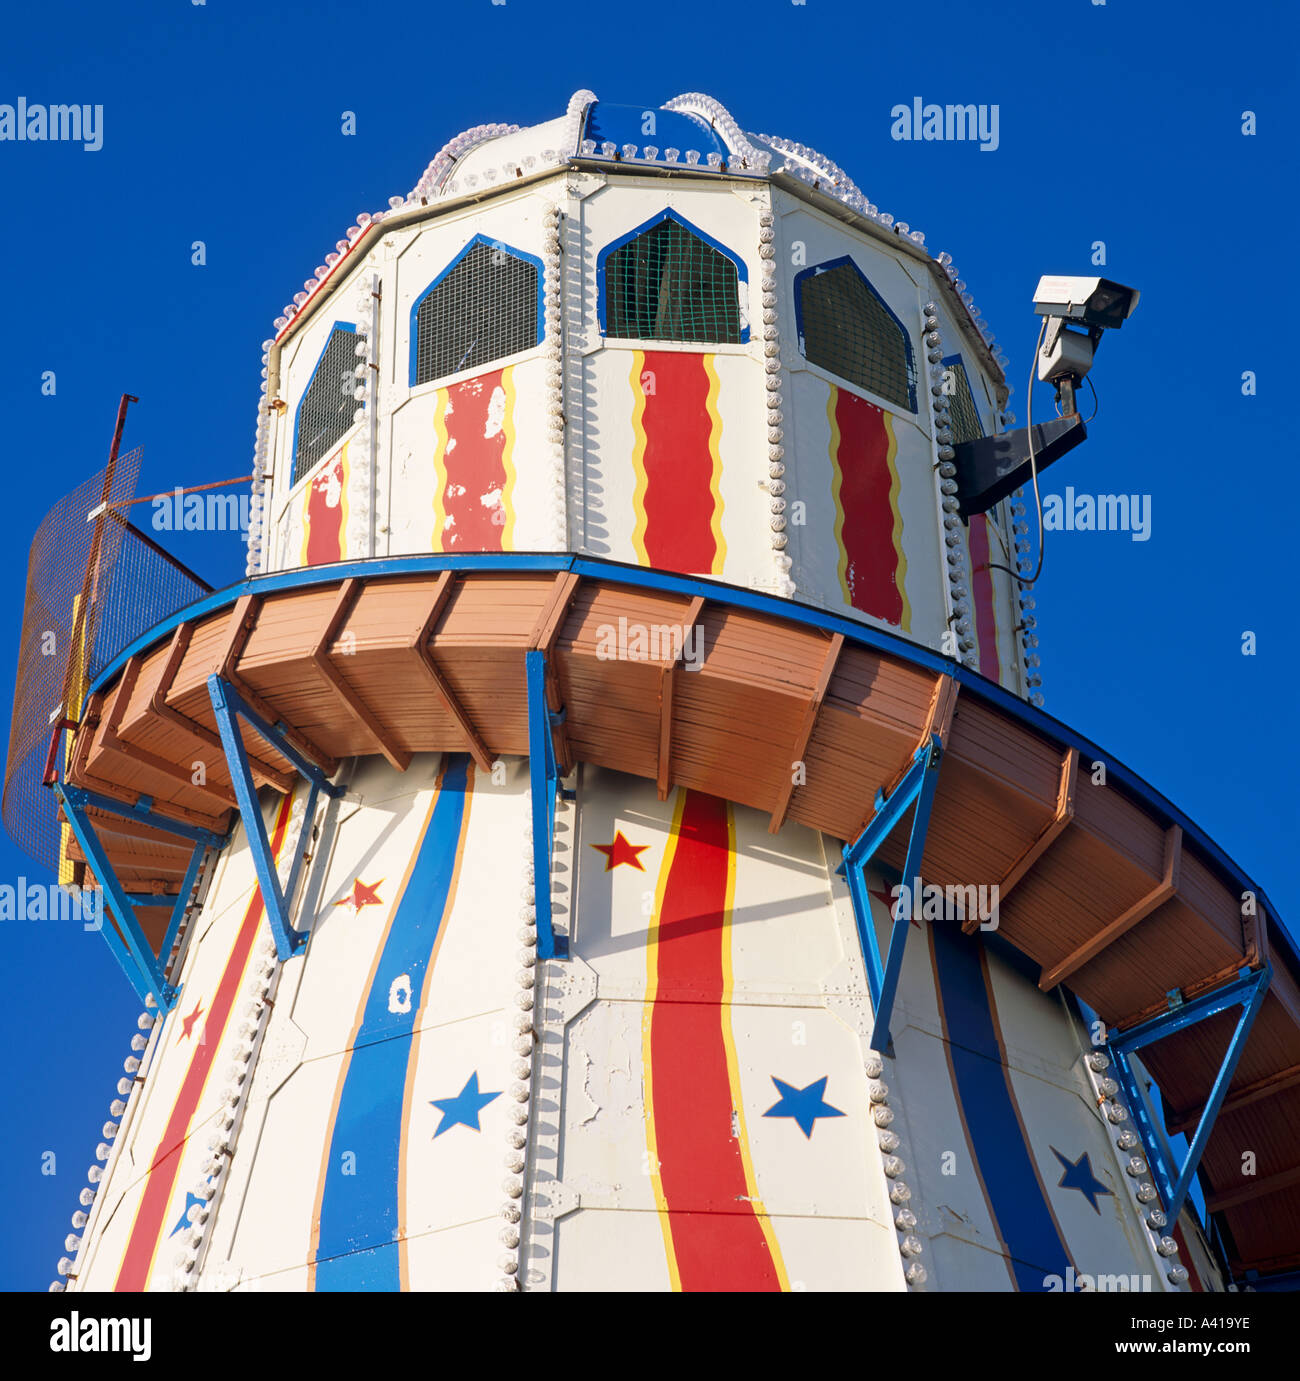 Helter Skelter The Royal Pier Brighton Sussex U.K. Europe Stock Photo